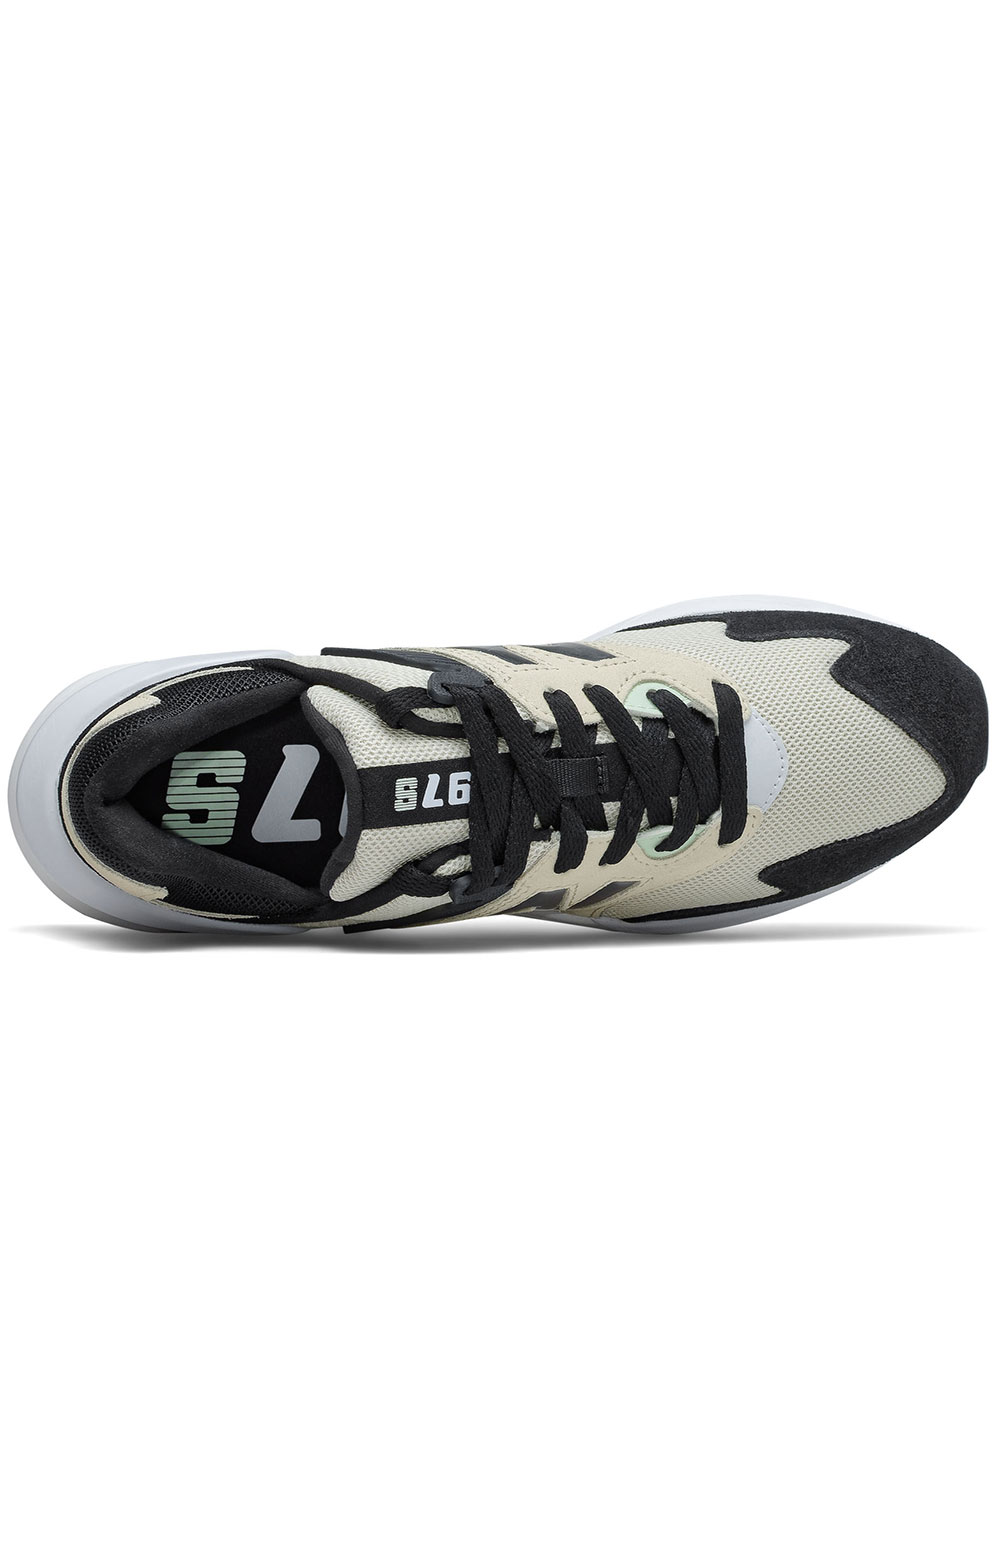 (WS997JKW) 997 Sport Shoes - Turtle Dove/Black 3